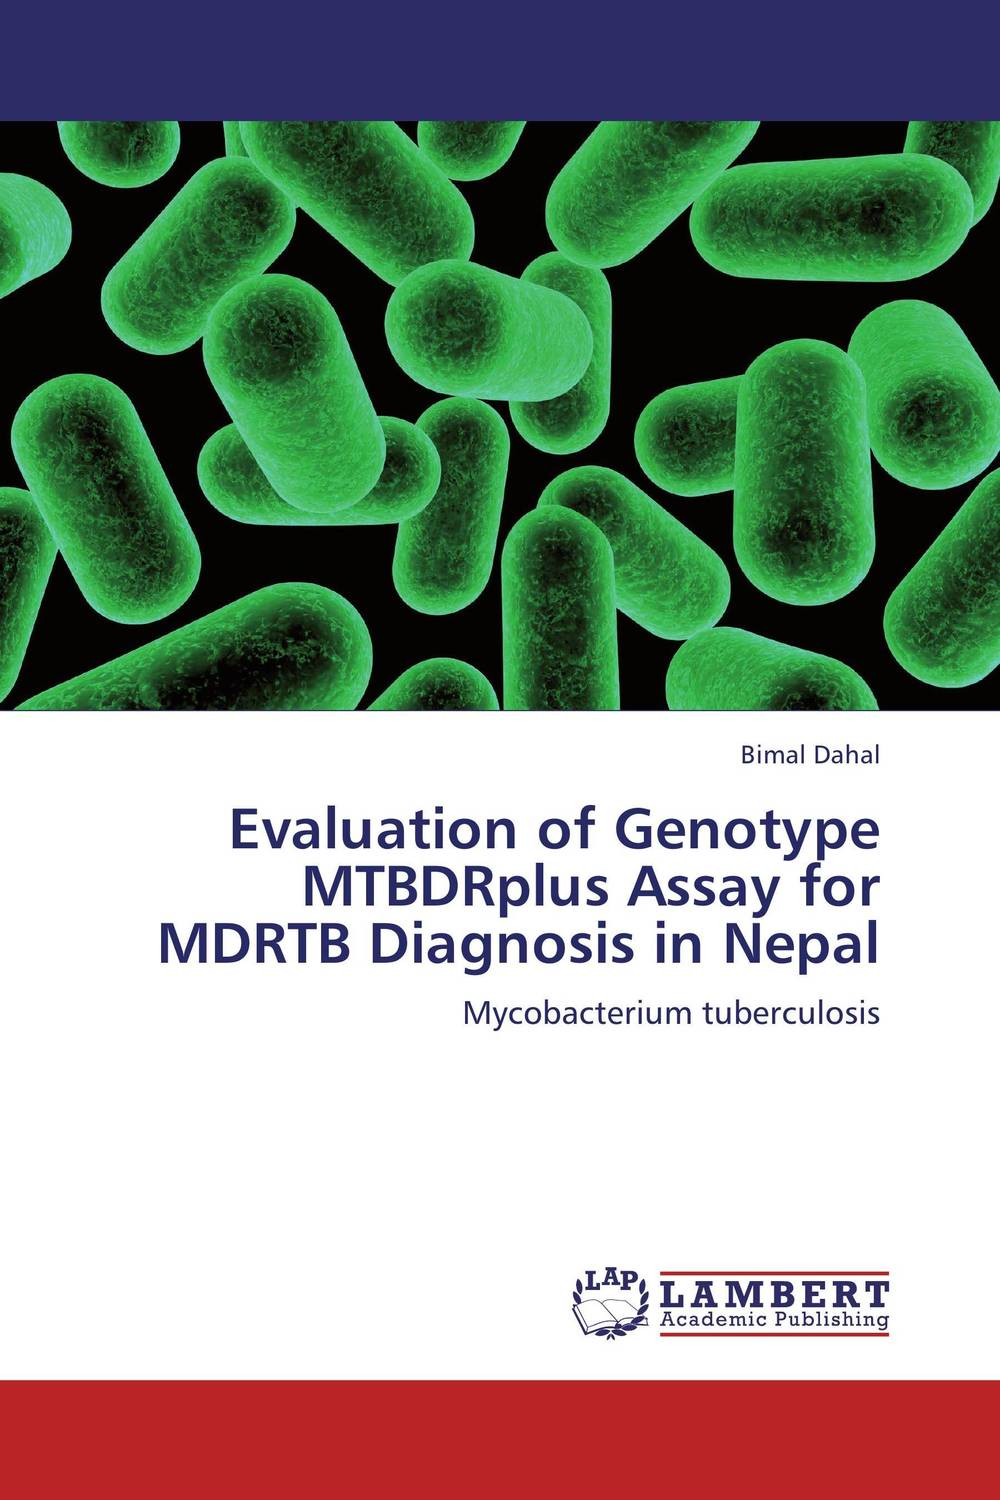 Evaluation of Genotype MTBDRplus Assay for MDRTB Diagnosis in Nepal evaluation of tuberculosis dot program case detection and management